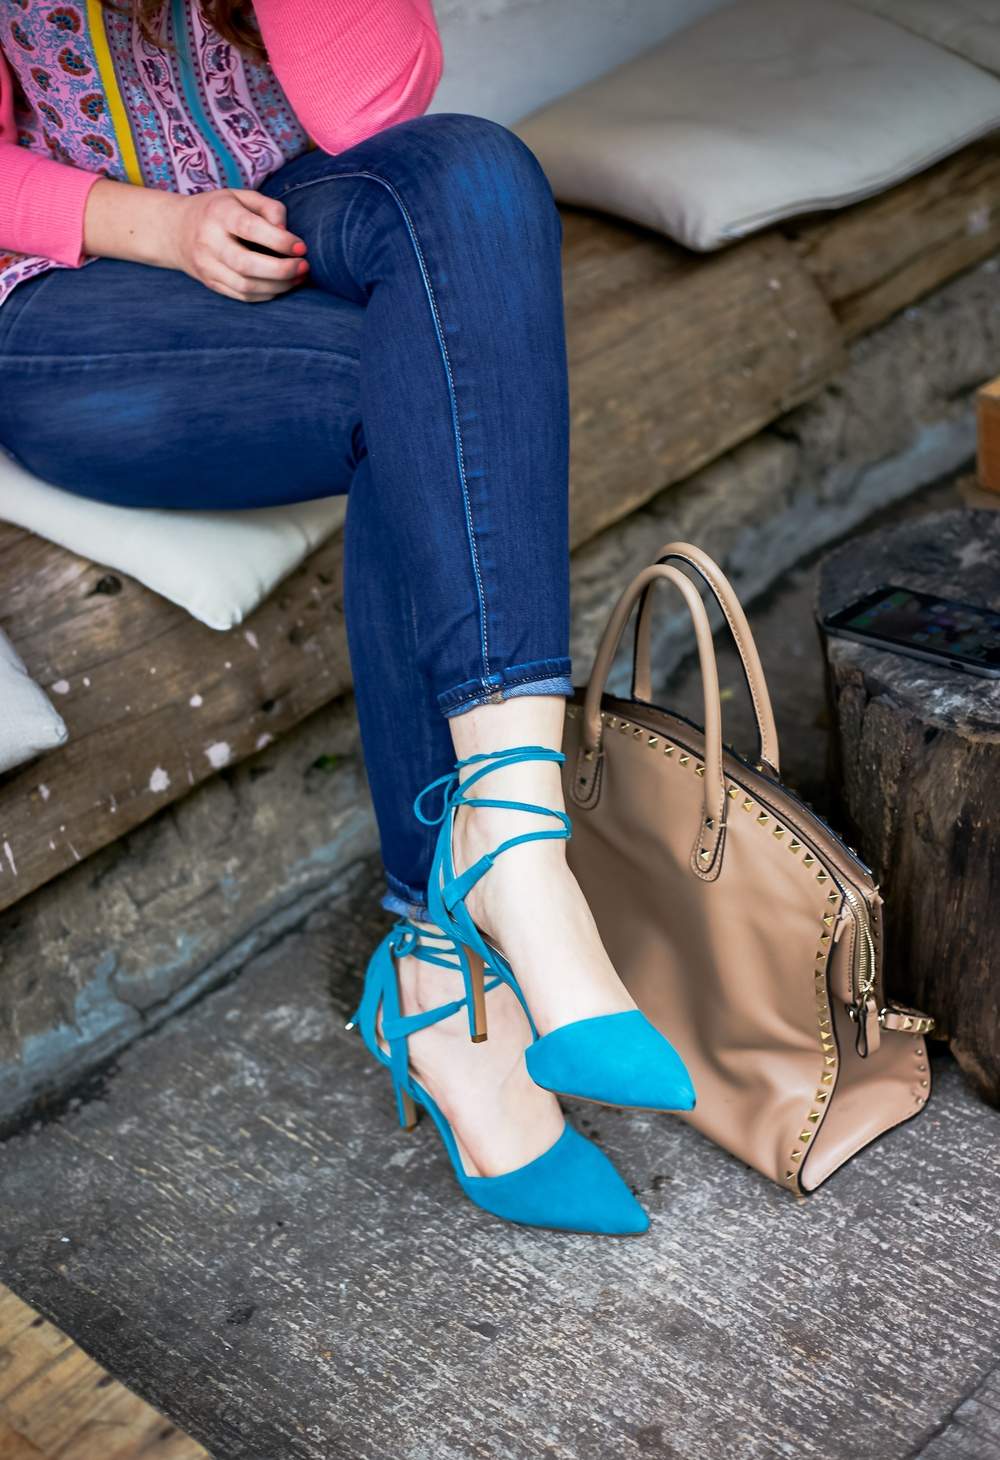 Turquoise Lace Up Heels Valentino Rockstud Dome Satchel